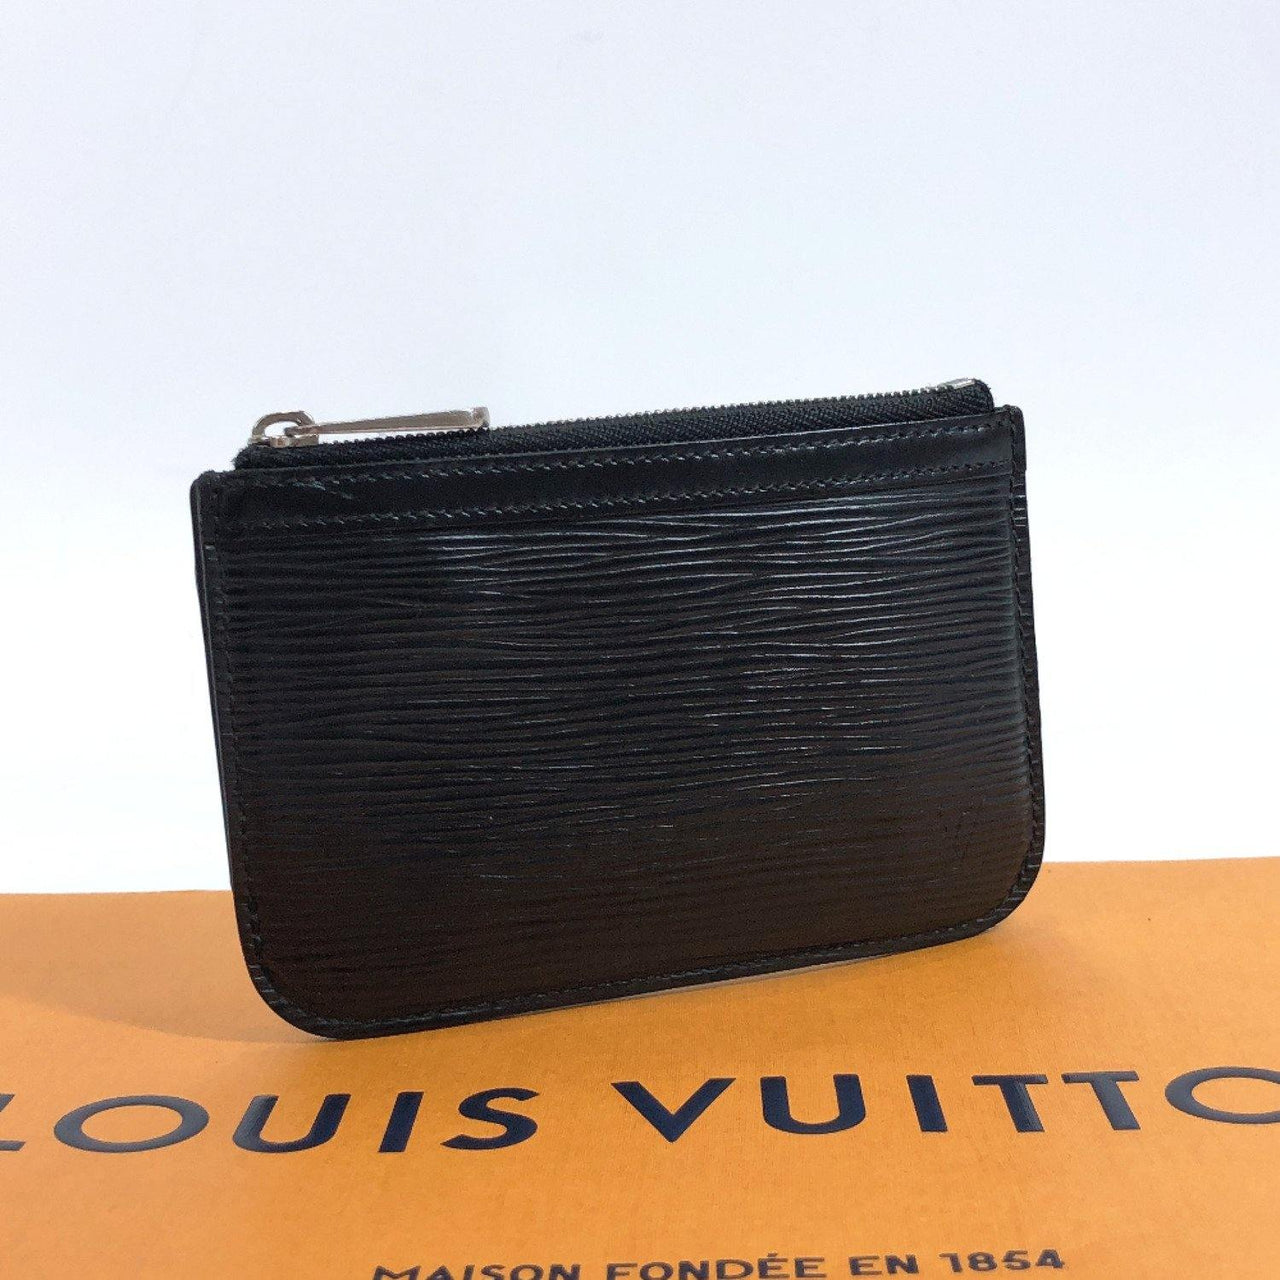 LOUIS VUITTON coin purse M66602 Pochette cree Epi Leather black unisex Used - JP-BRANDS.com